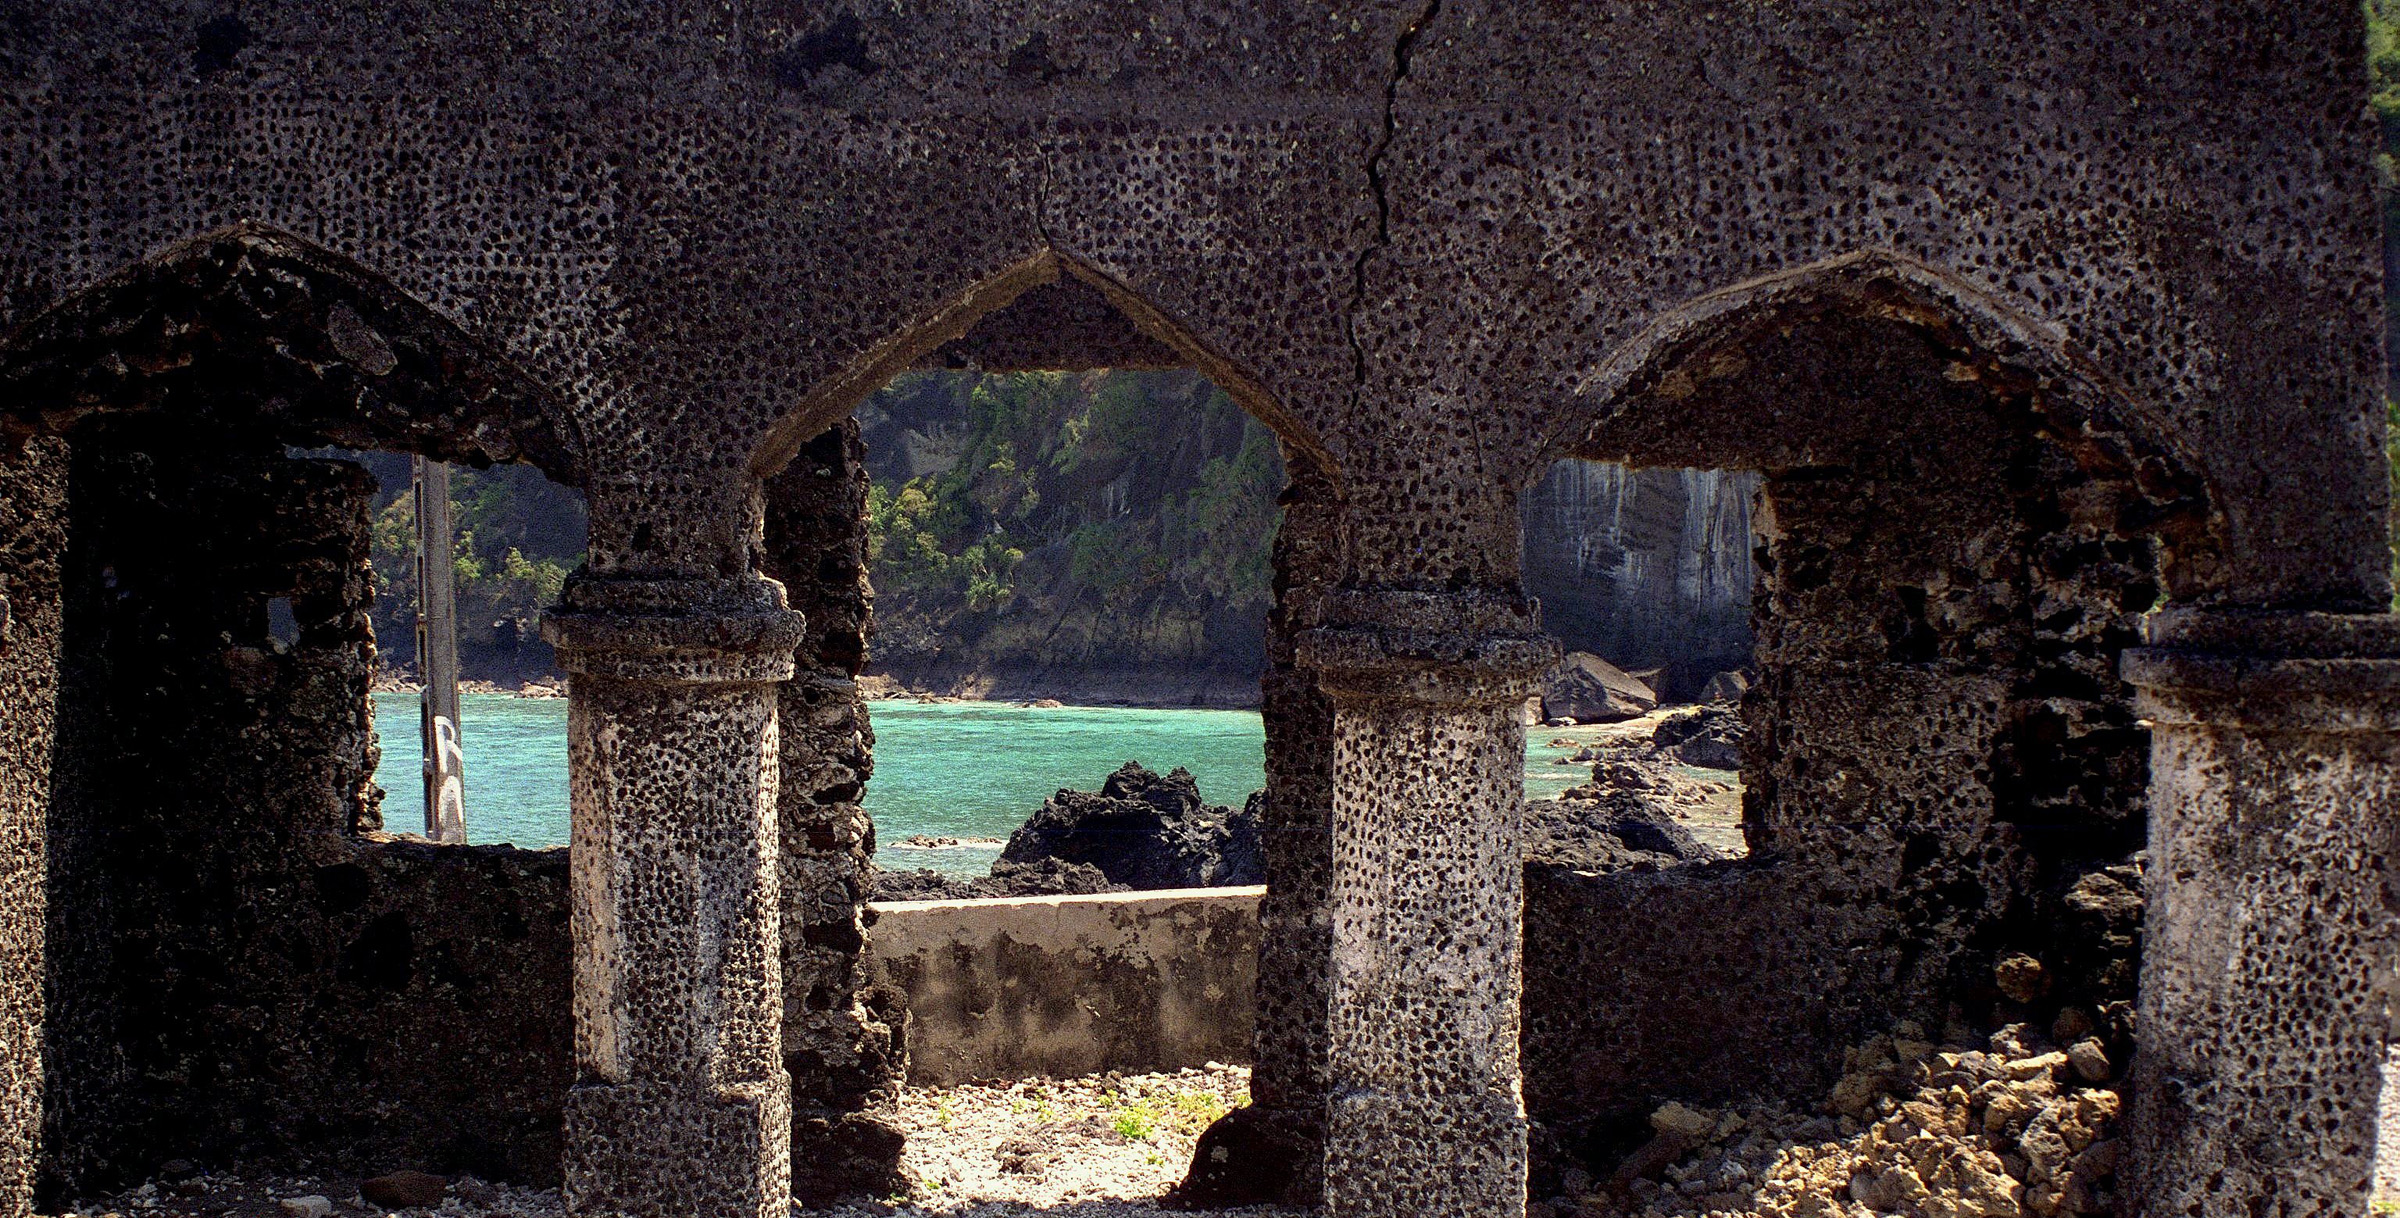 Ruins of a mosque in the Comoros - by Juergen Kurlvink